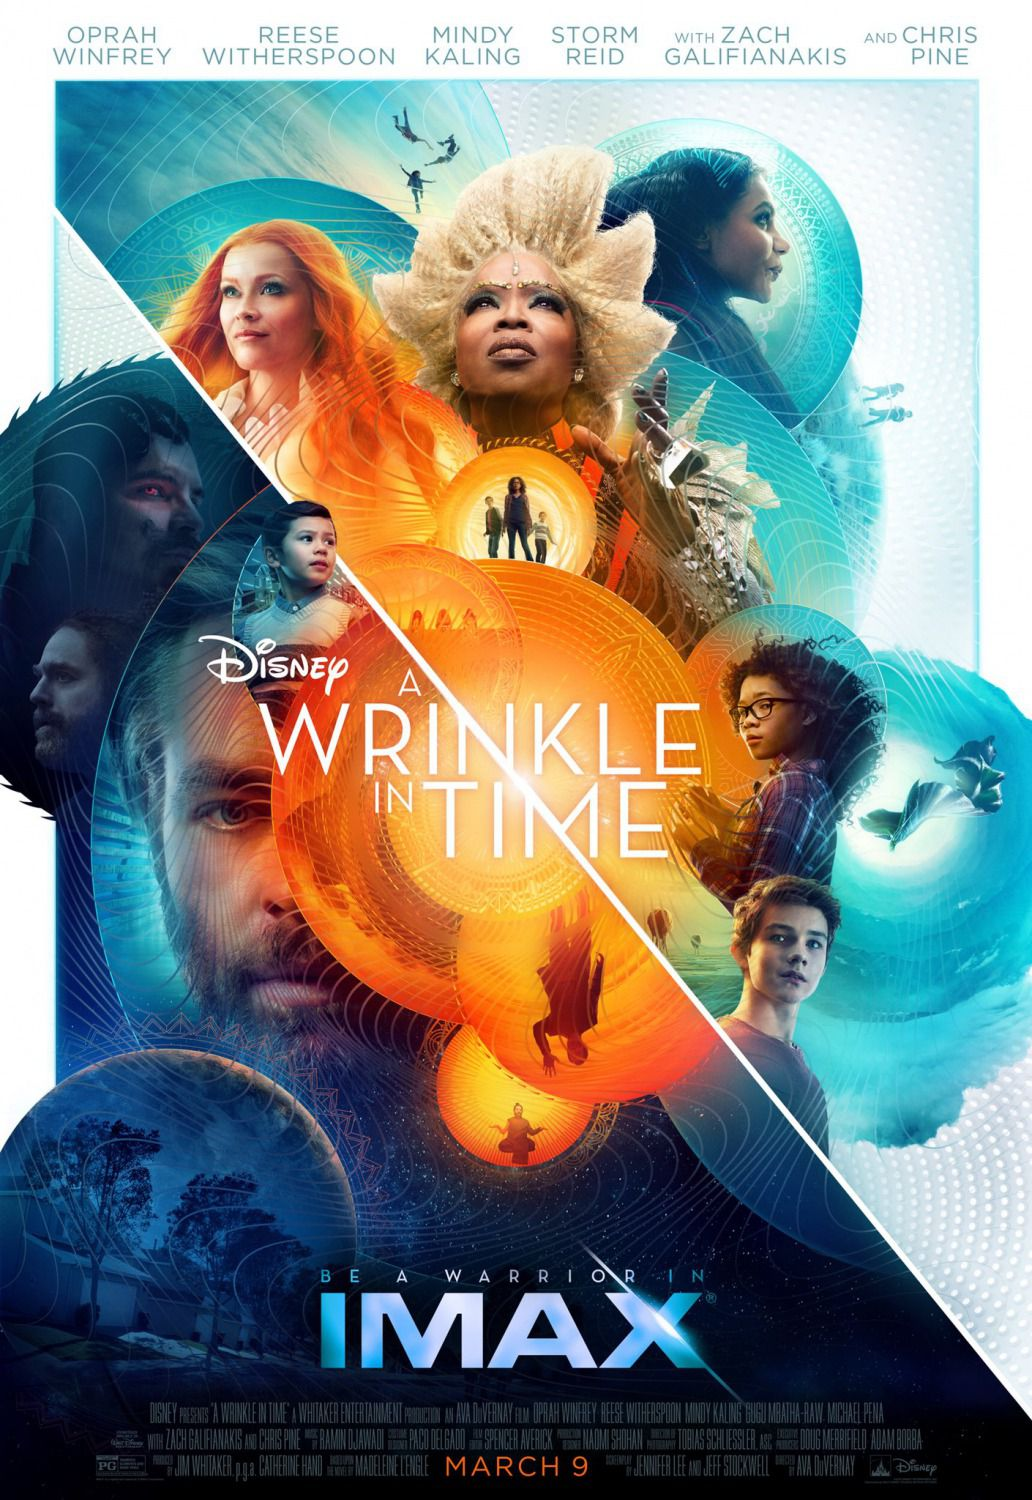 Wrinkle in Time - nelle pieghe del tempo - Reese Witherspoon, Oprah Winfrey, Storm Reid, Mindy Kaling, Zach Galifianakis, Chris Pine - Poster 2018